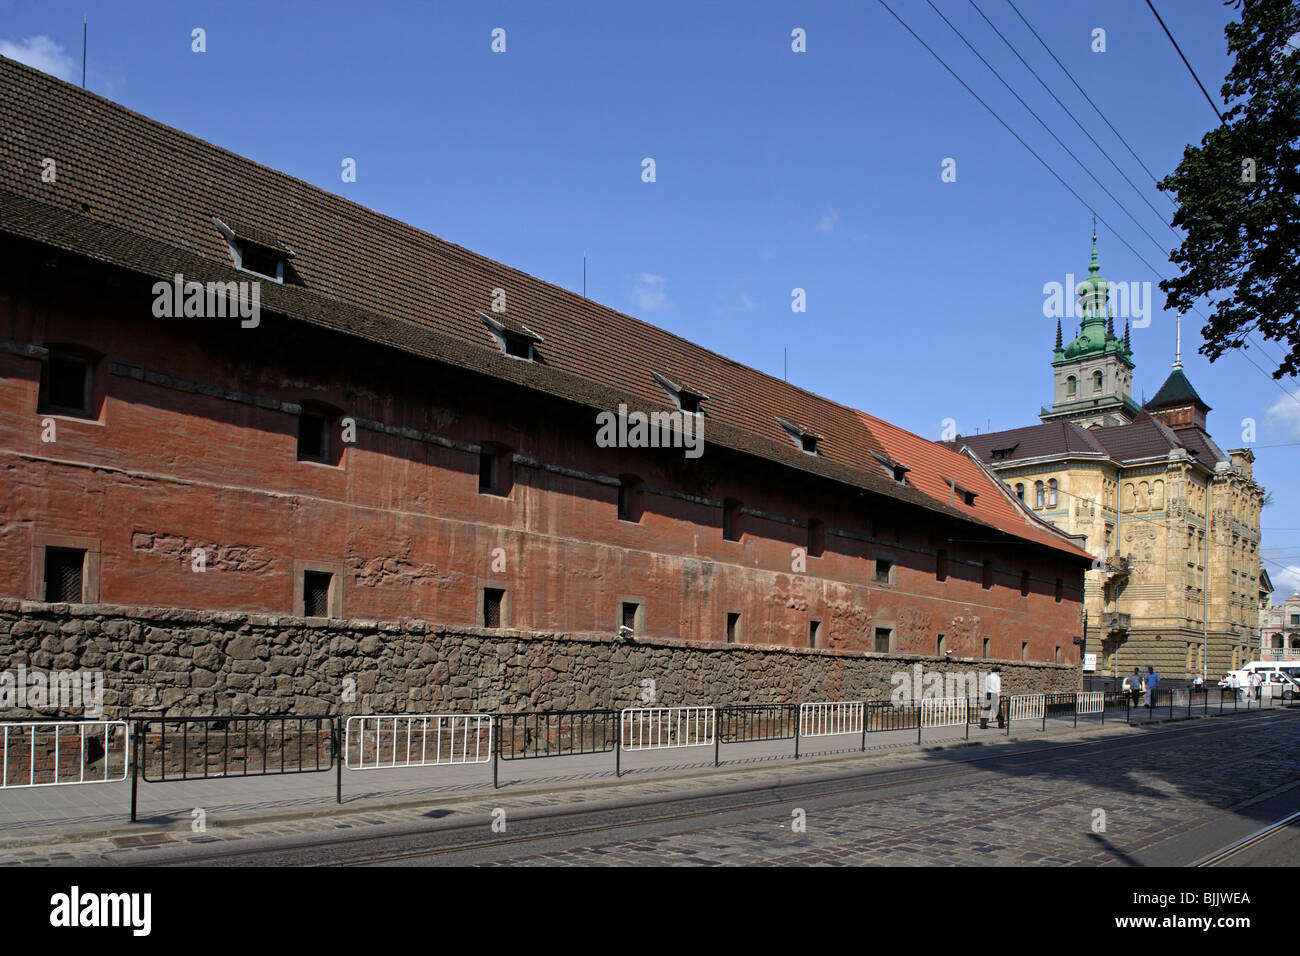 Lviv,Lvov,City weaponry Arsenal,Western Ukraine - Stock Image